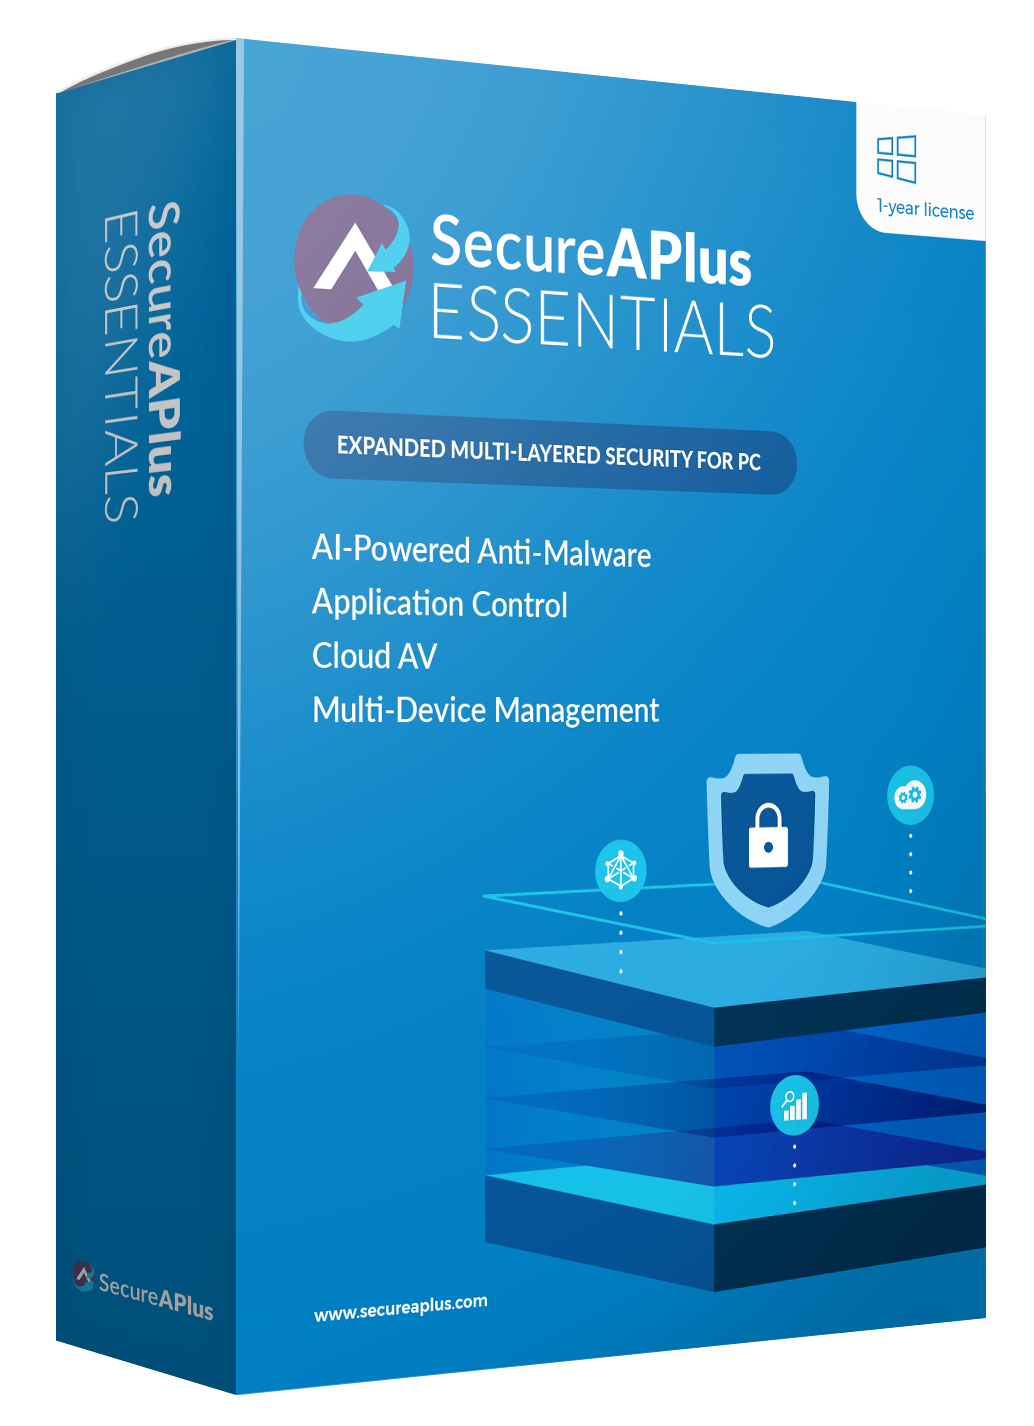 SecureAPlus-Essentials-2019